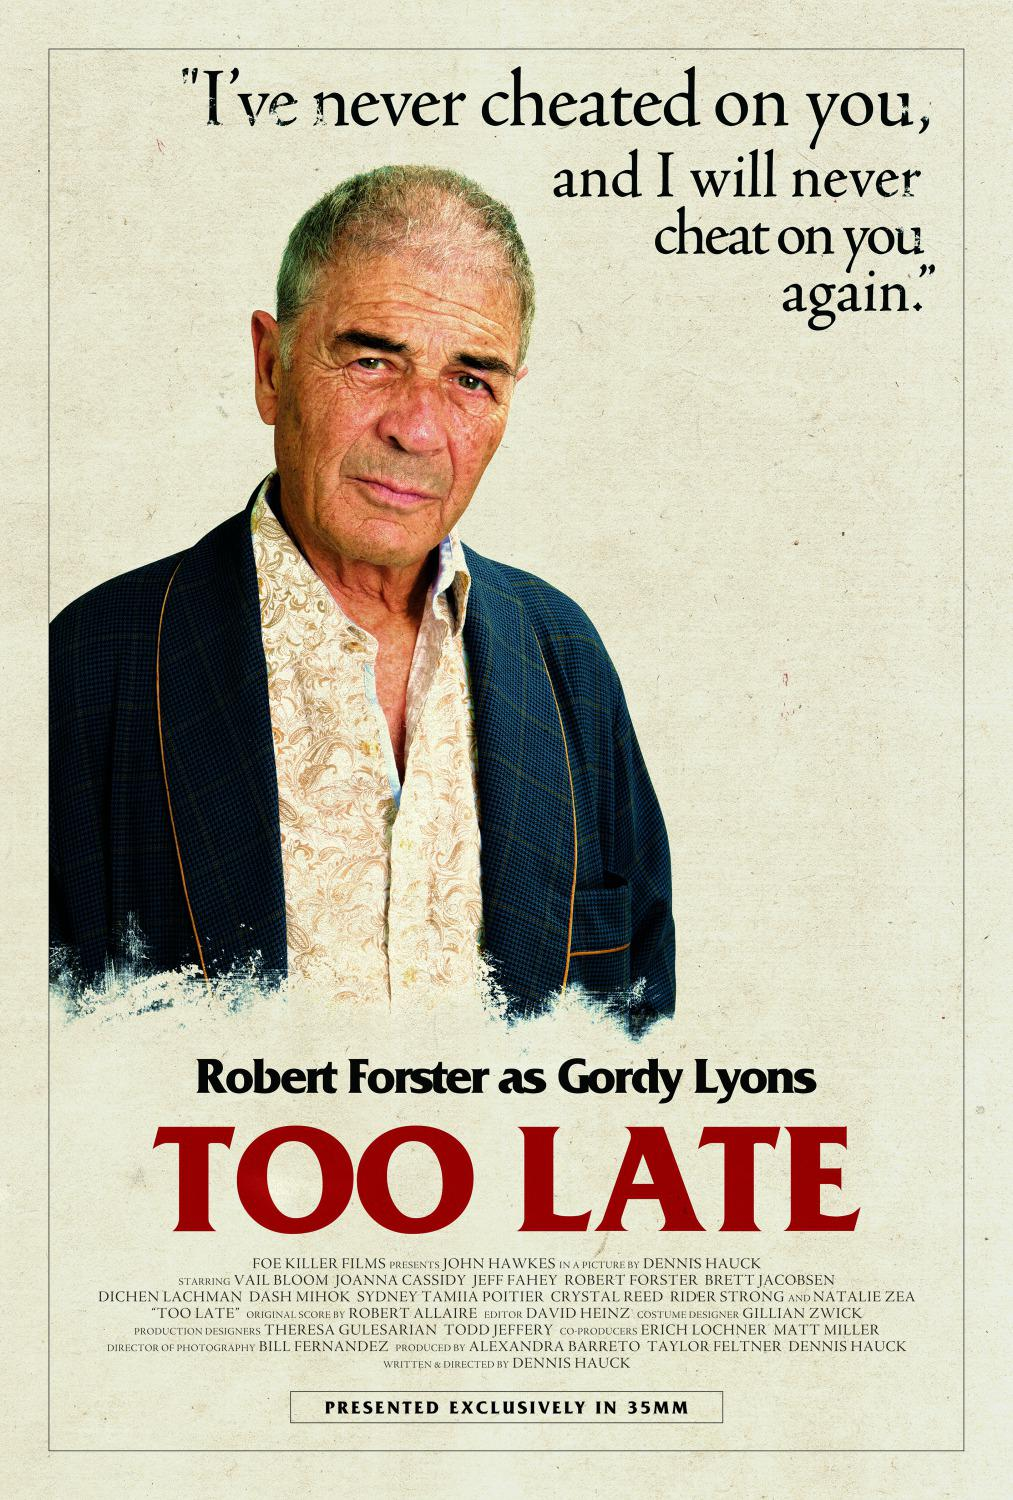 Troppo Tardi - Too Late - Robert Forster as Gordy Lyons